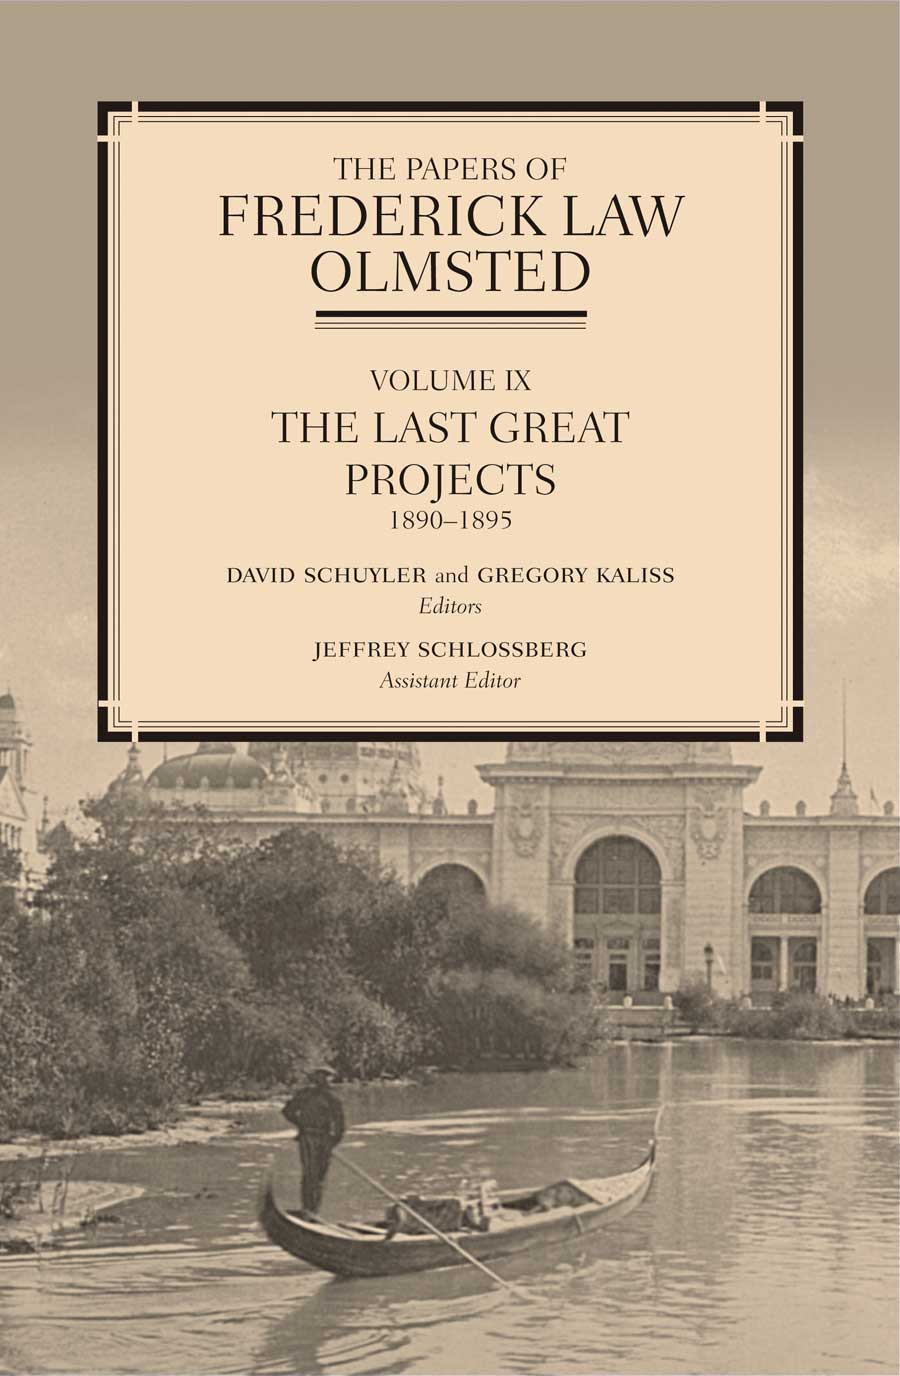 olmsted9